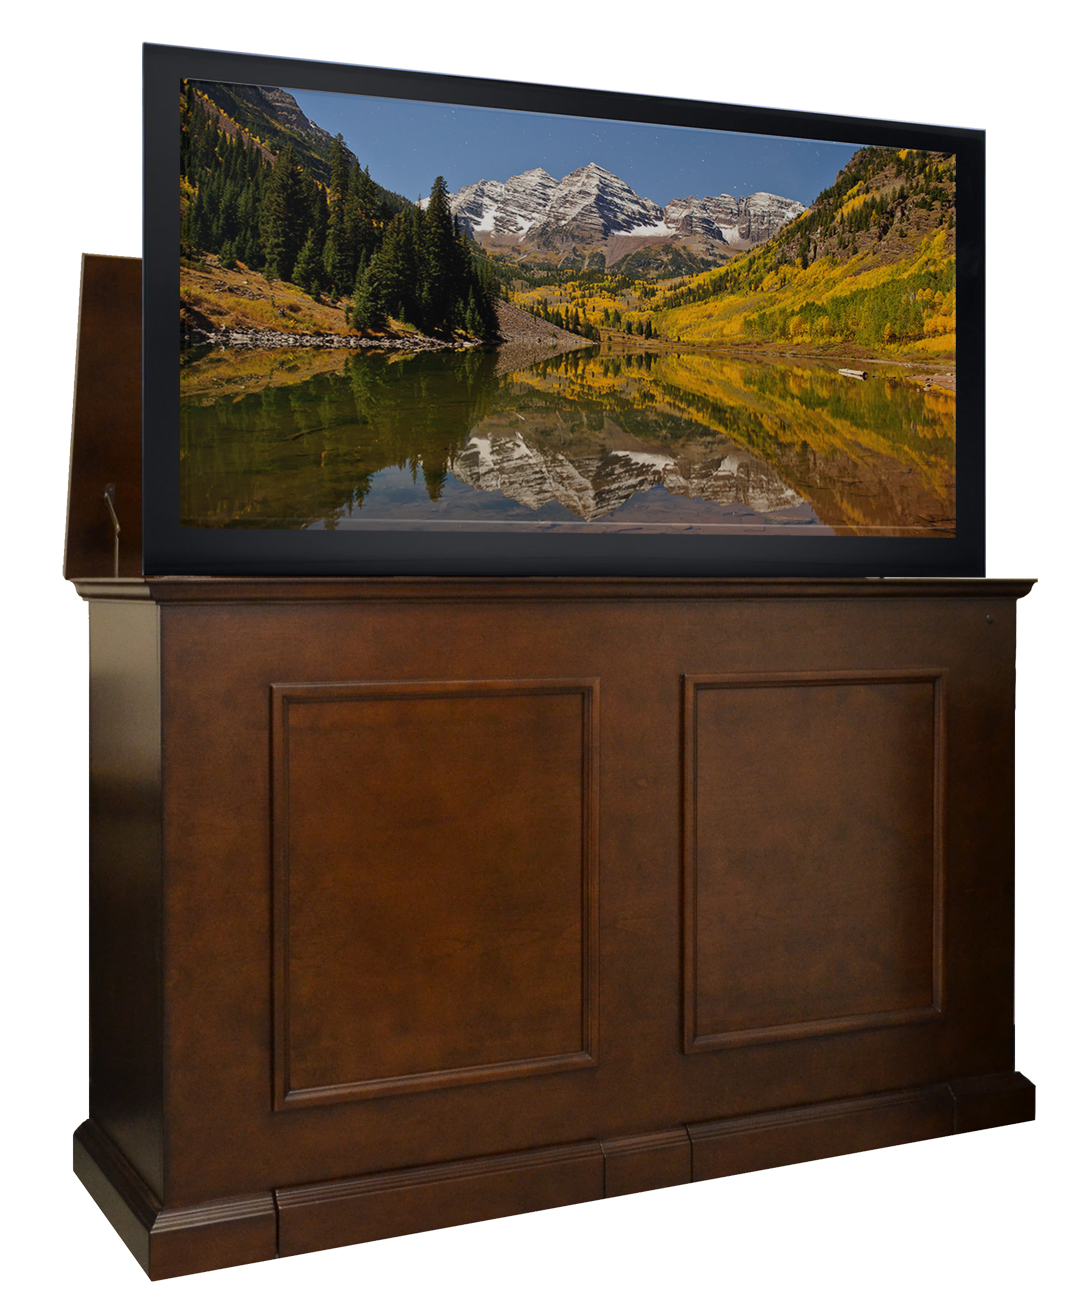 grand elevate espresso tv lift cabinet for flat panel tvs up to 60. Black Bedroom Furniture Sets. Home Design Ideas